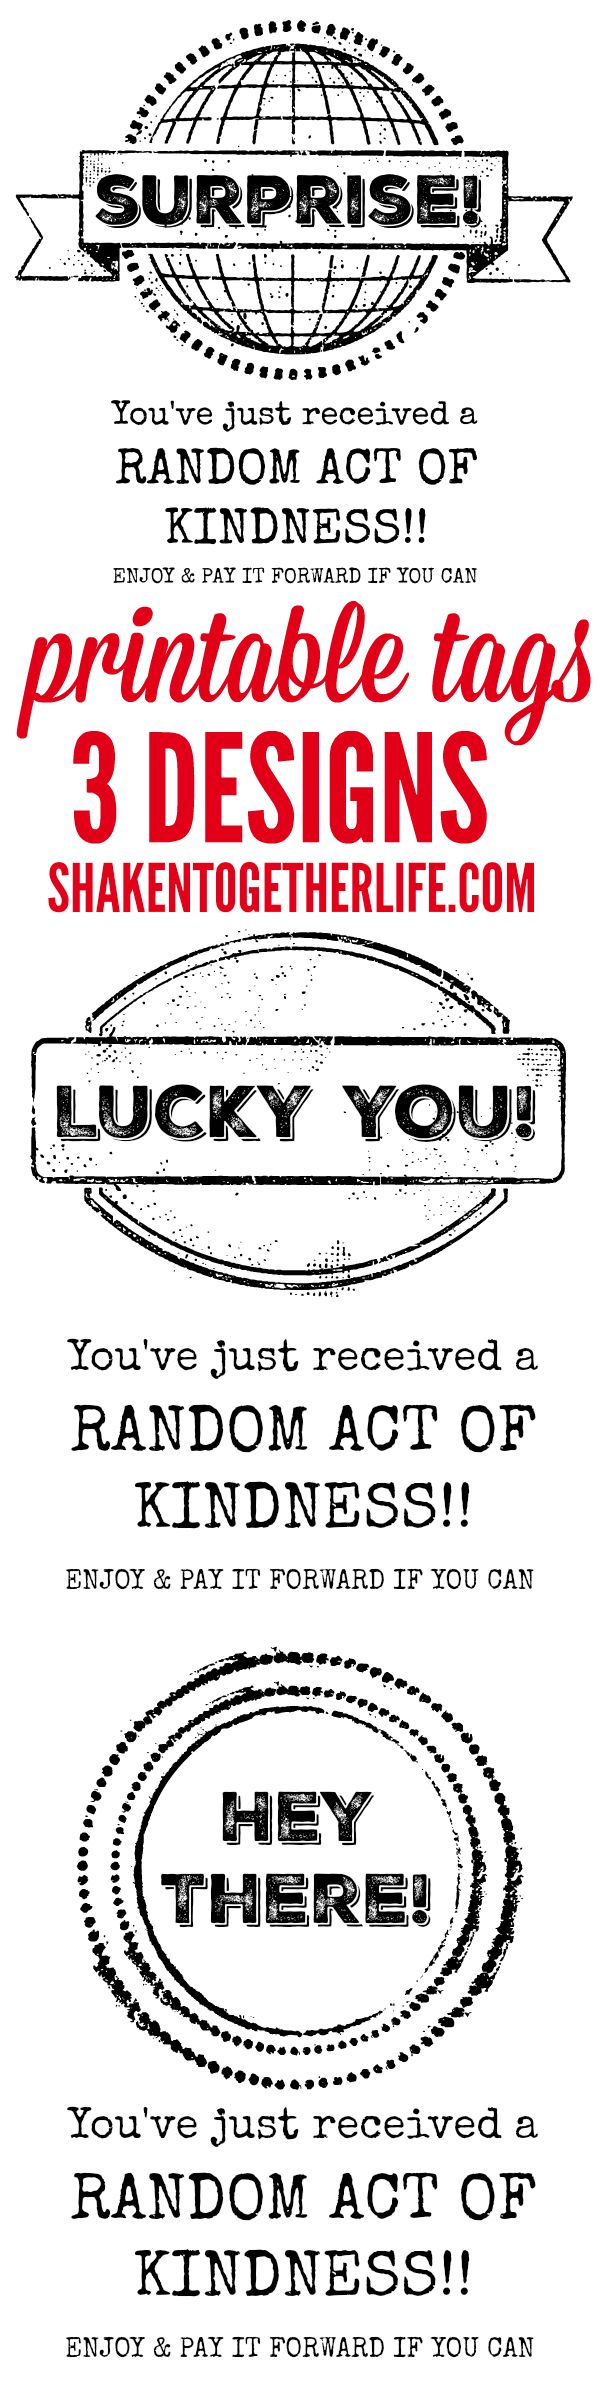 Are you ready to share some smiles? Leave behind a little love? Shower your community with generosity? Then grab a few of our Printable Random Acts of Kindness tags and spread the love! #RAK #randomactsofkindness